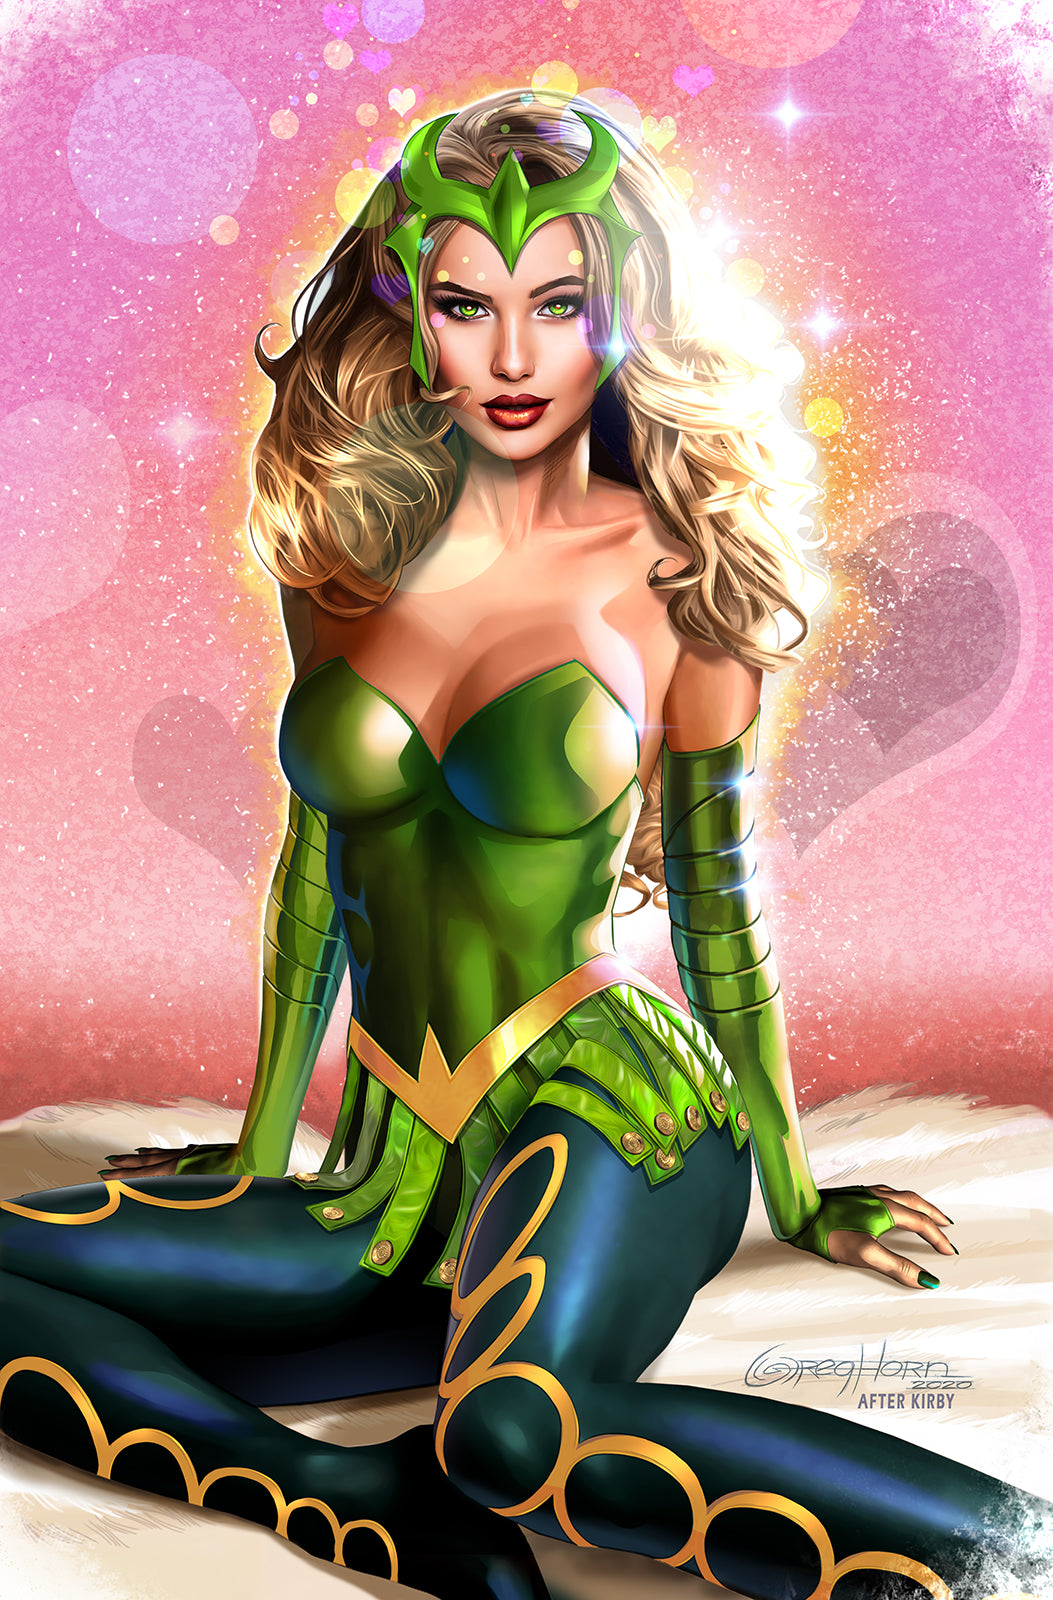 The Enchantress! - High quality - 11 x 17 digital print